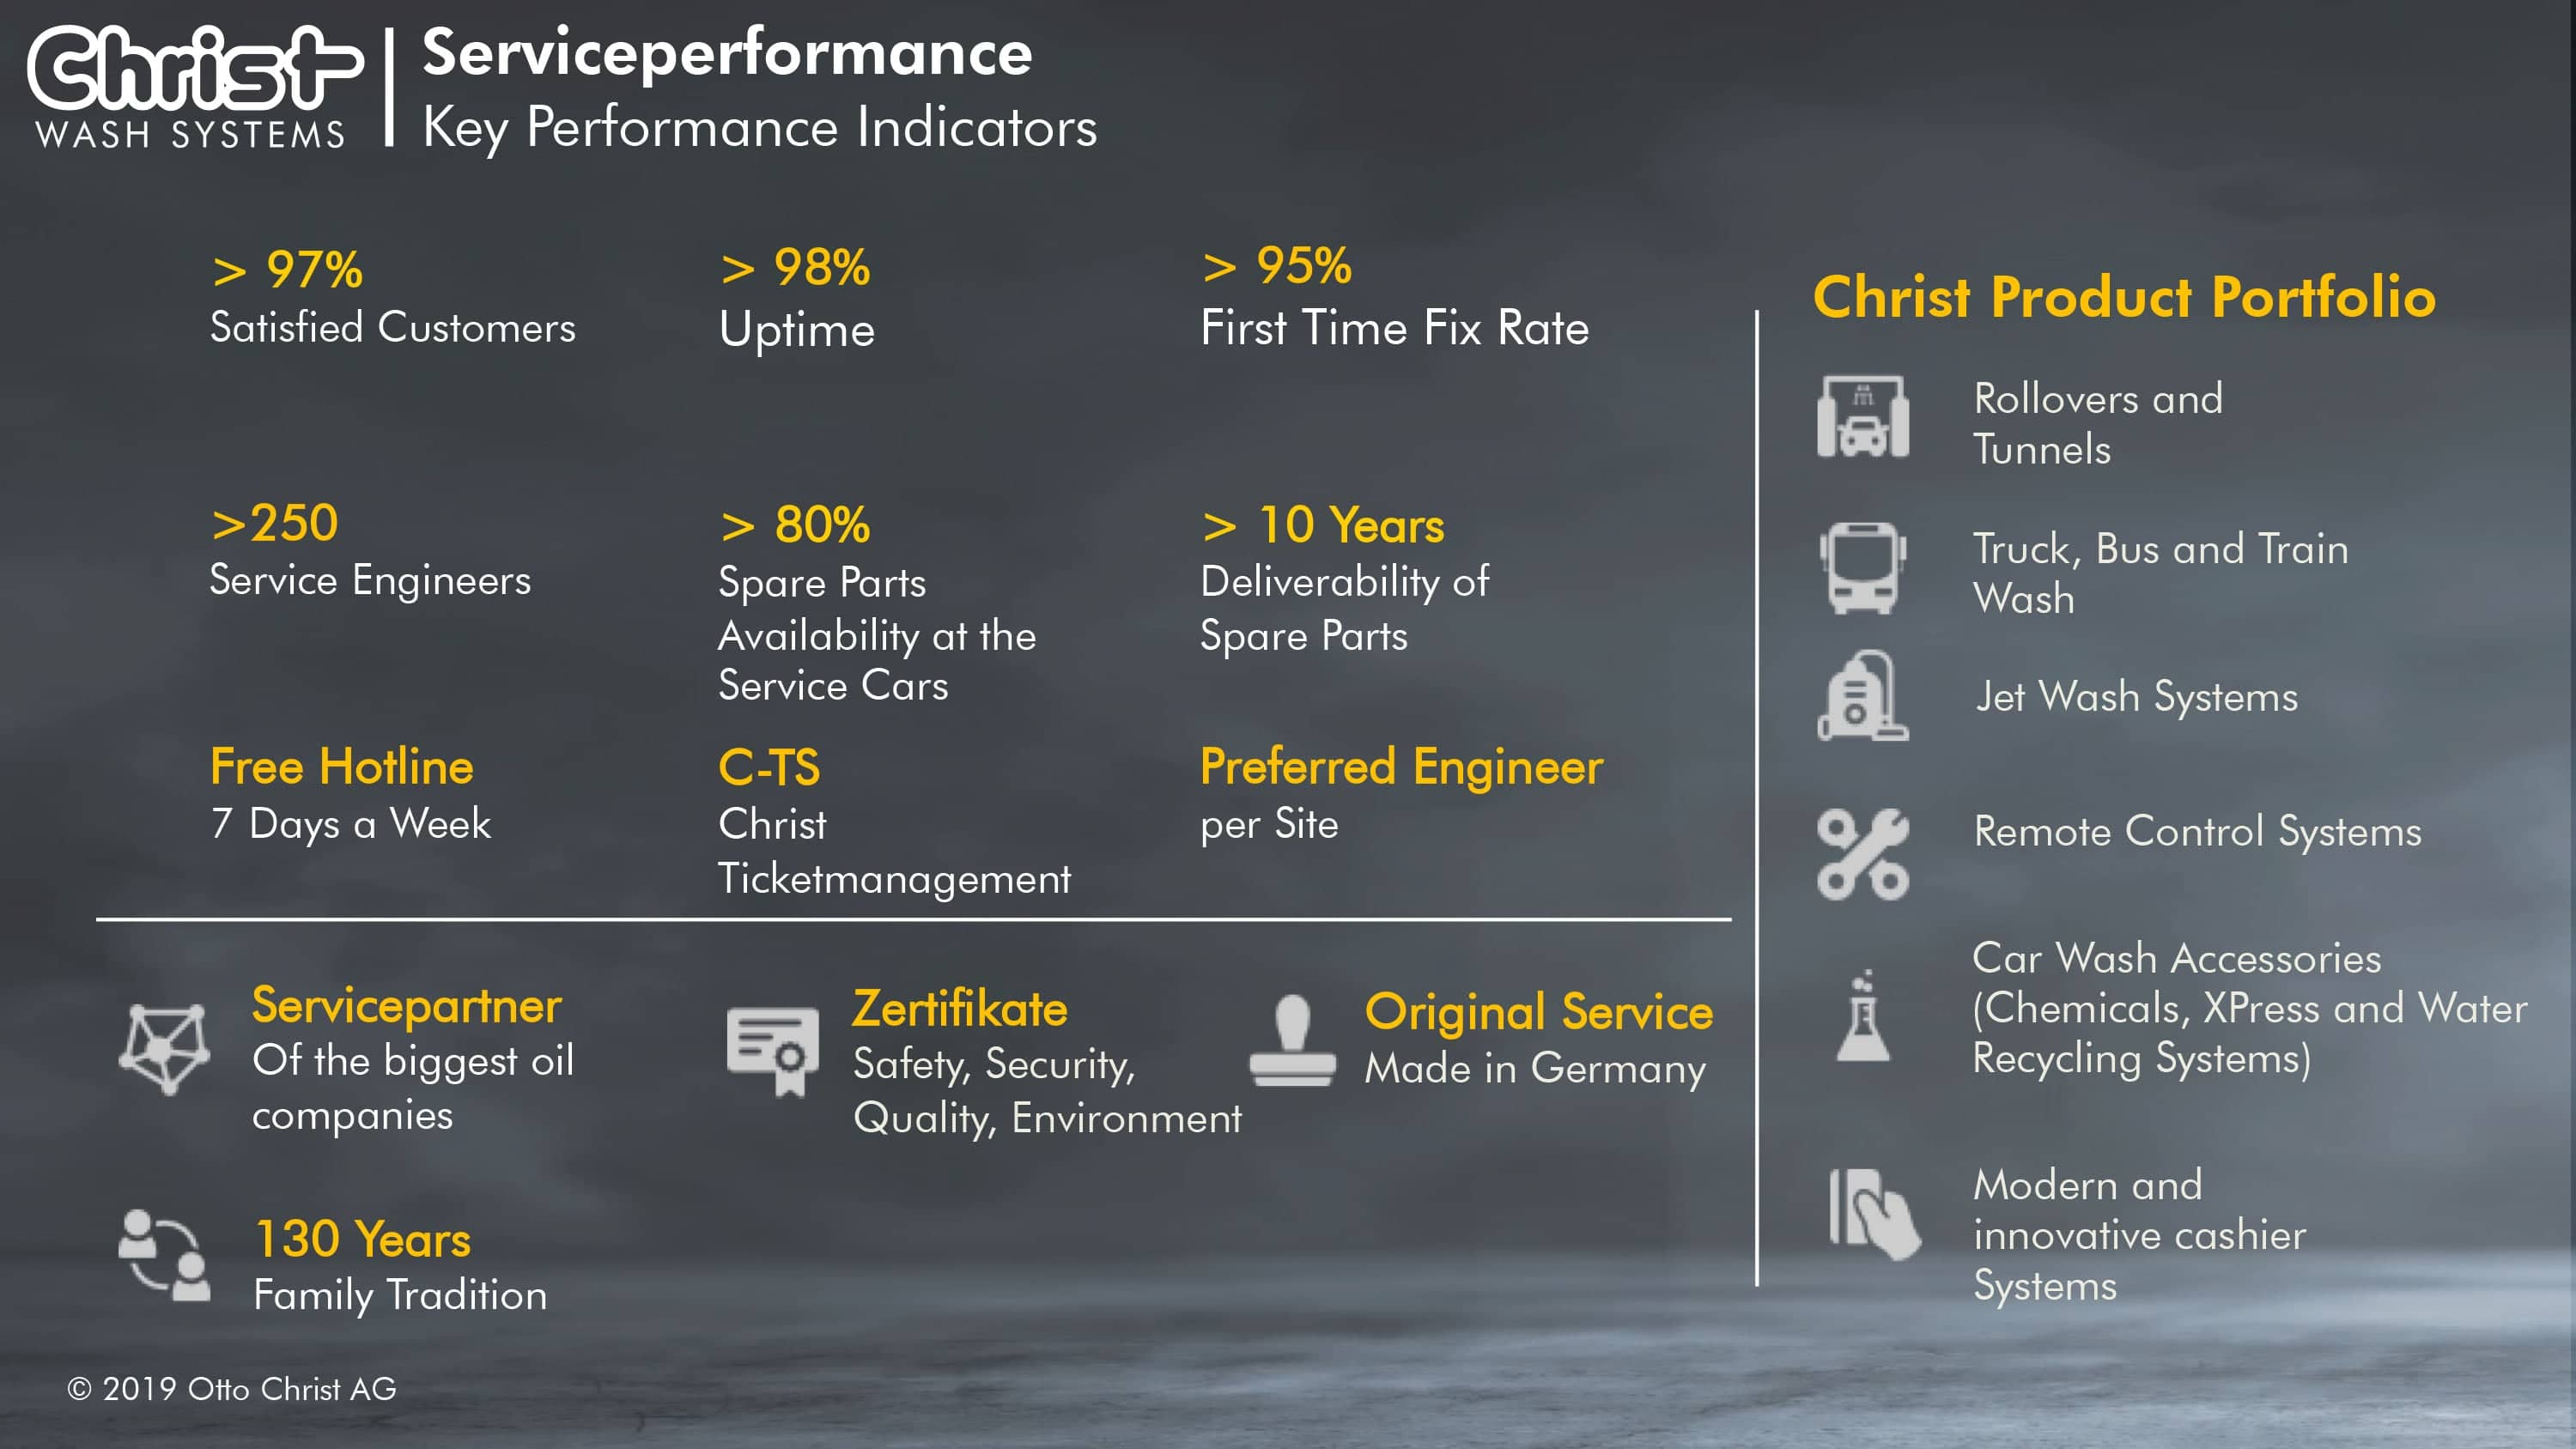 Christ serviceperformance